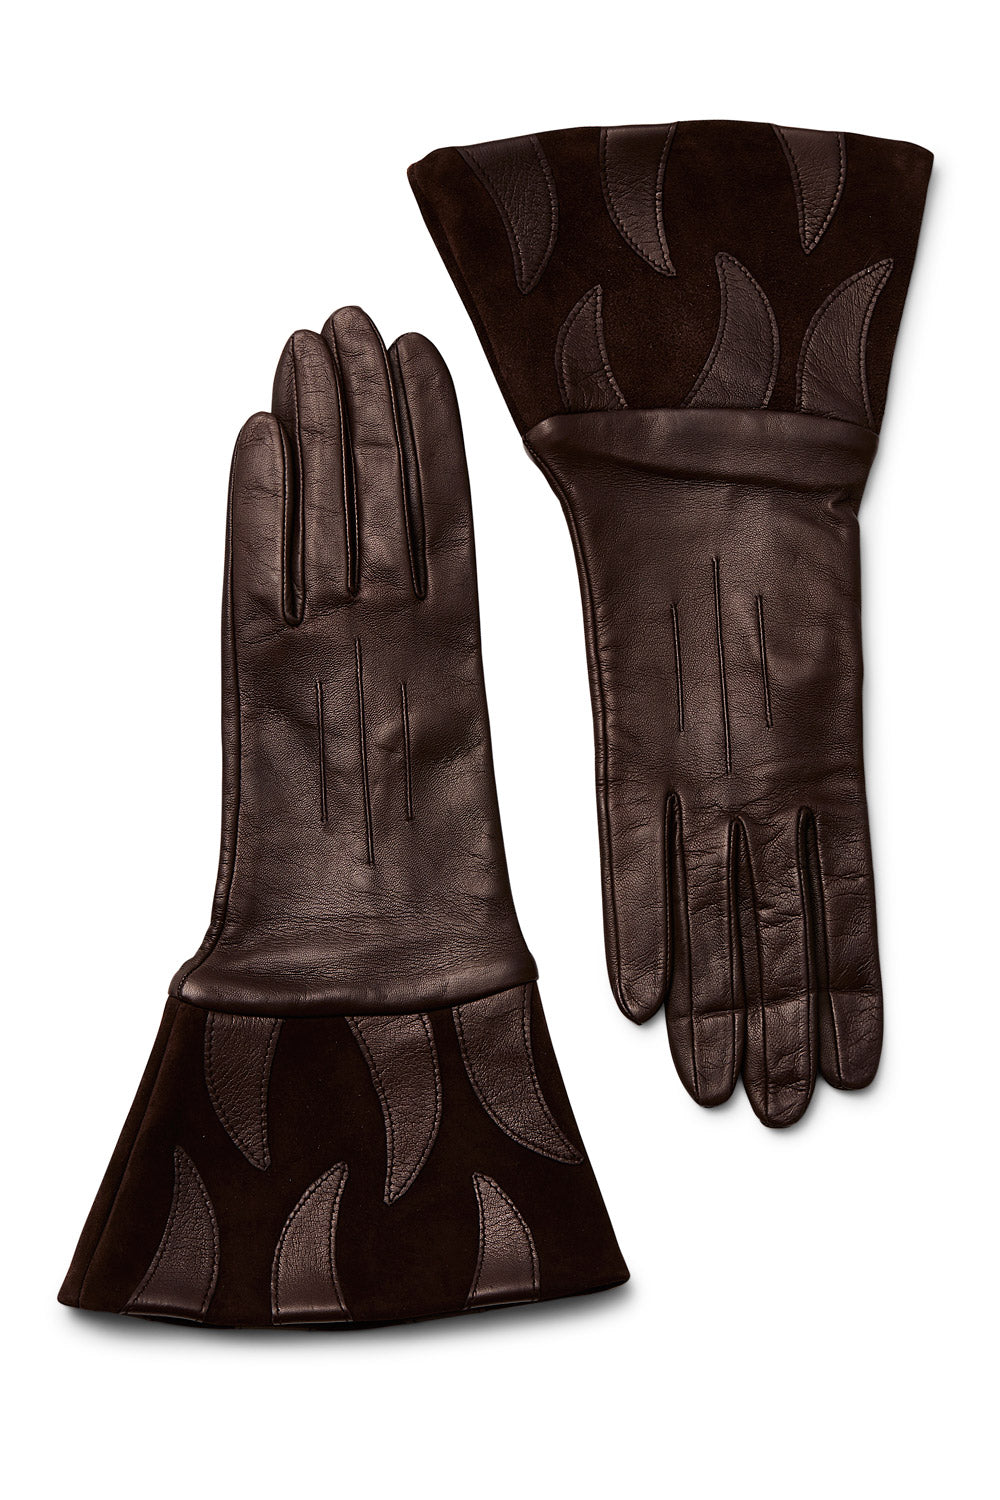 Vintage<br>1970's/80's brown leather and suede gloves